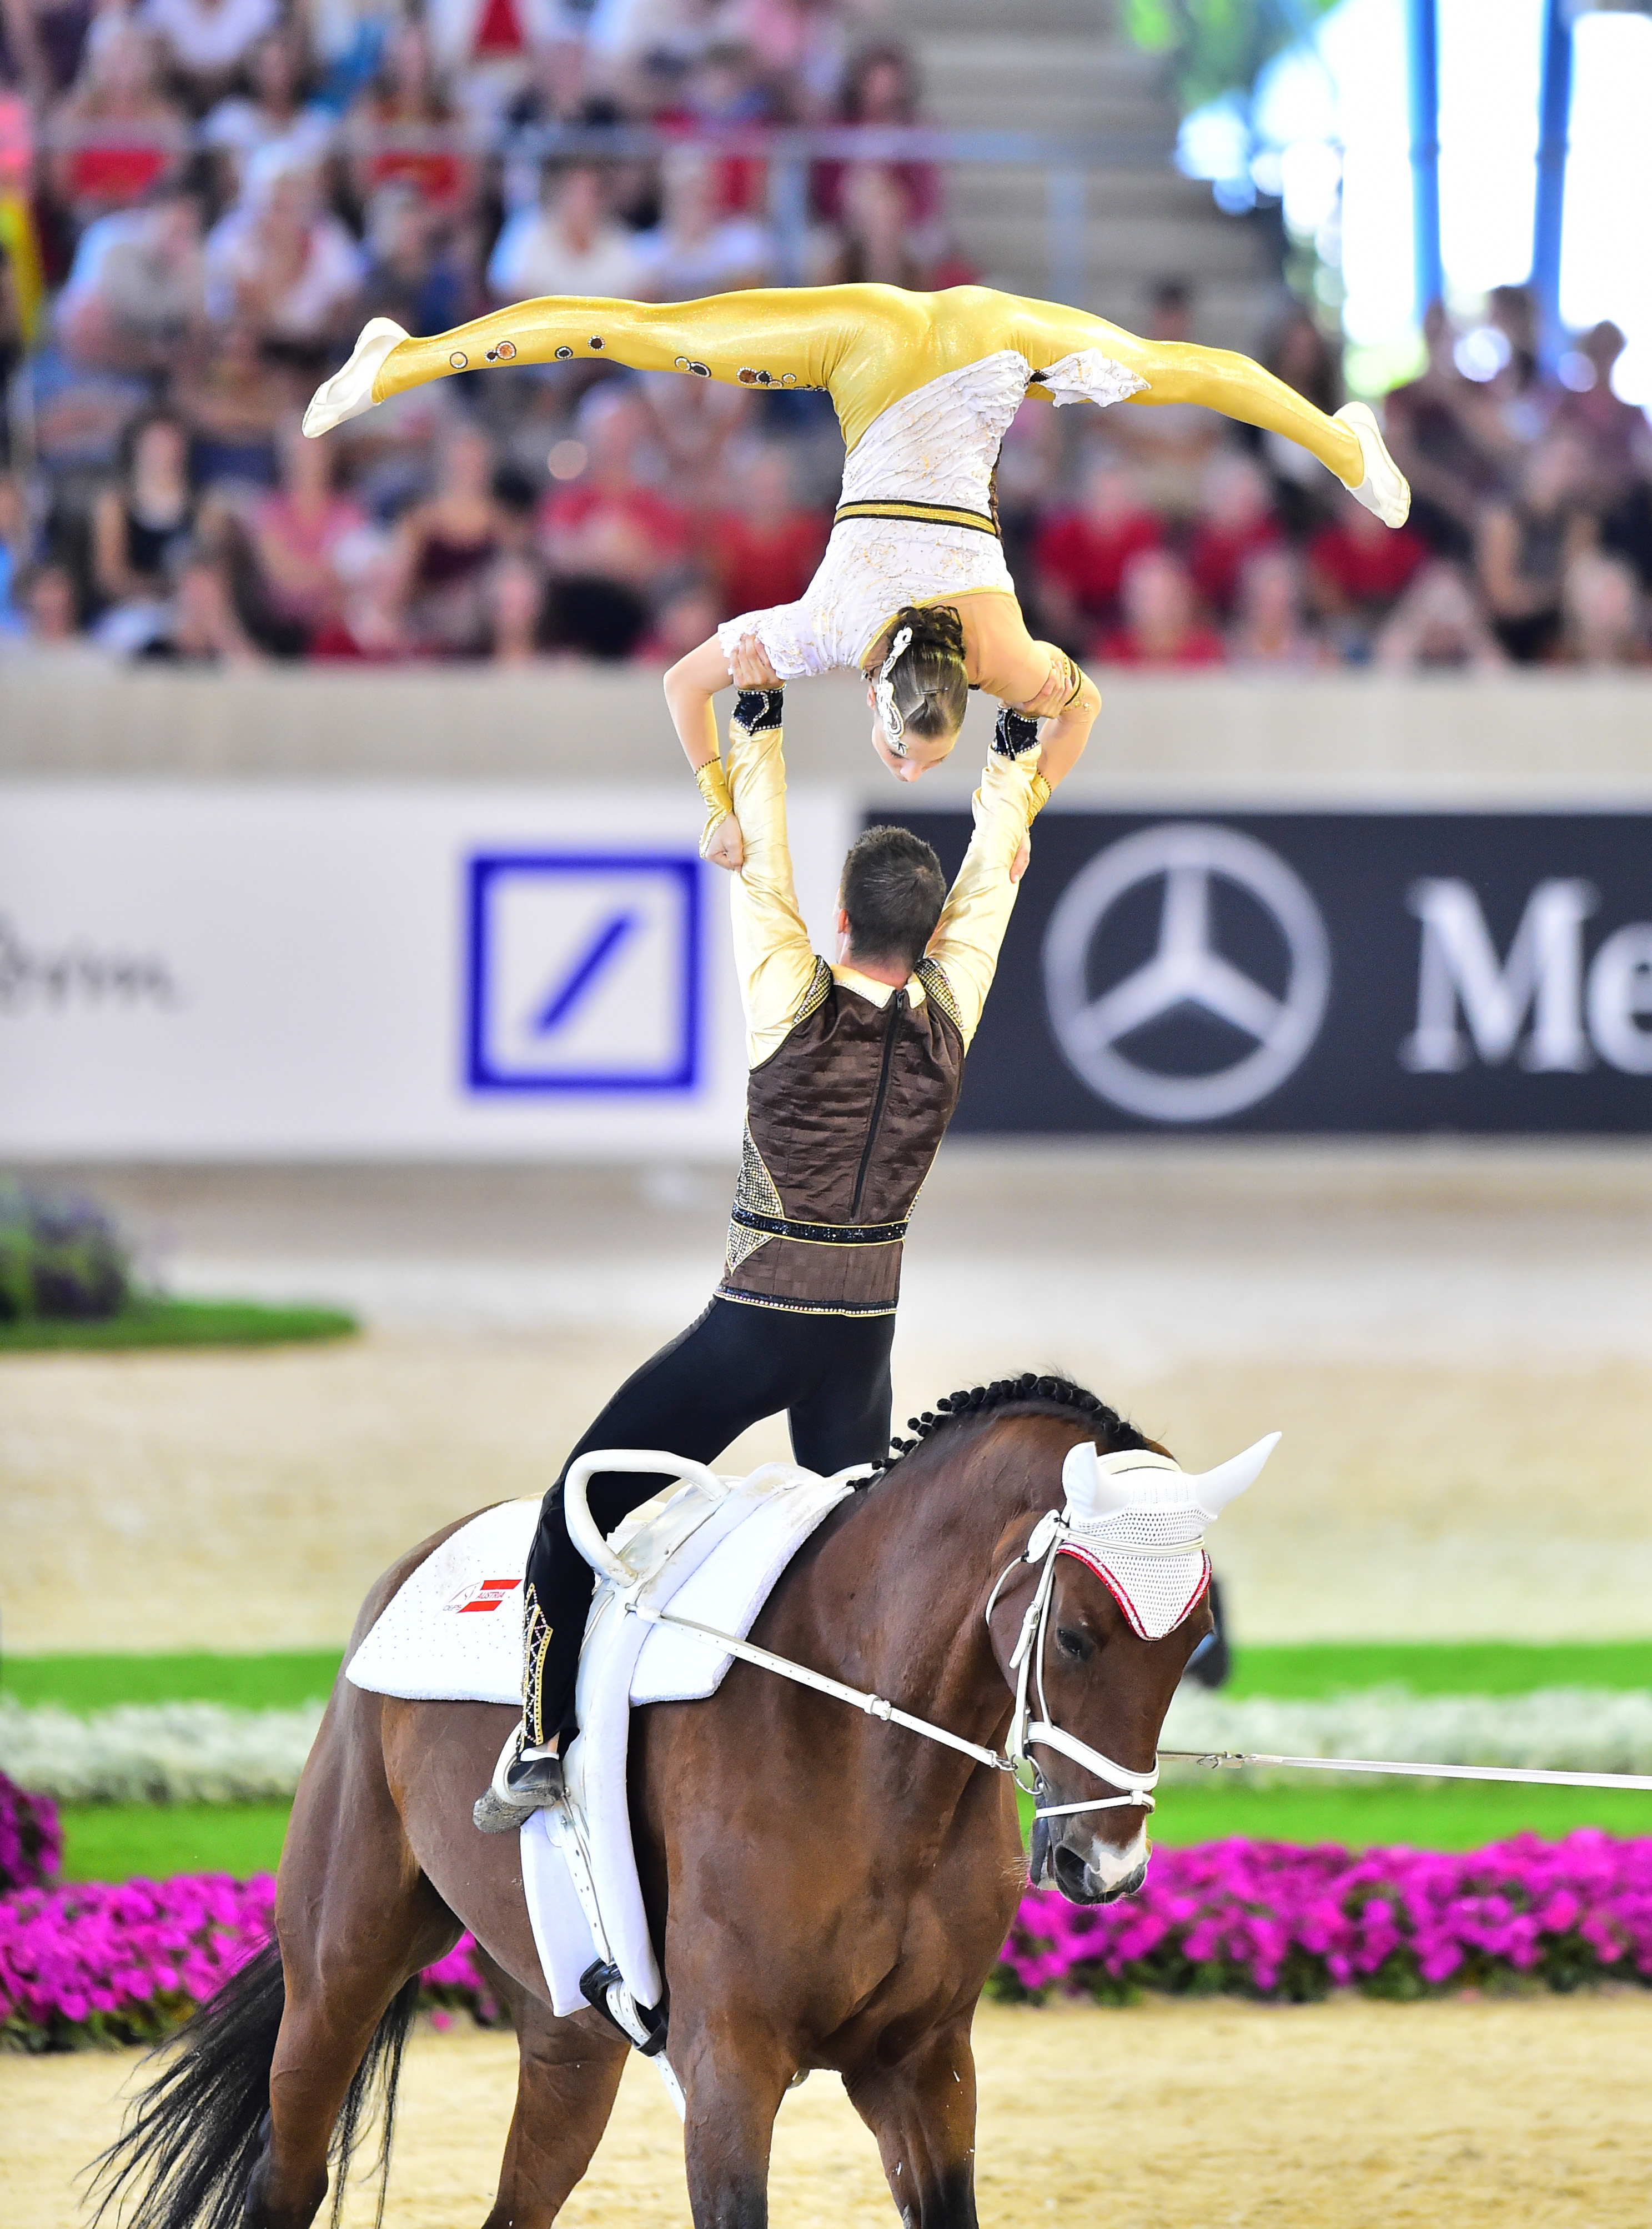 Horse Times Egypt: Equestrian Magazine :News :GERMANY AND AUSTRIA CLAIM EUROPEAN CHAMPIONSHIPS VAULTING GOLD